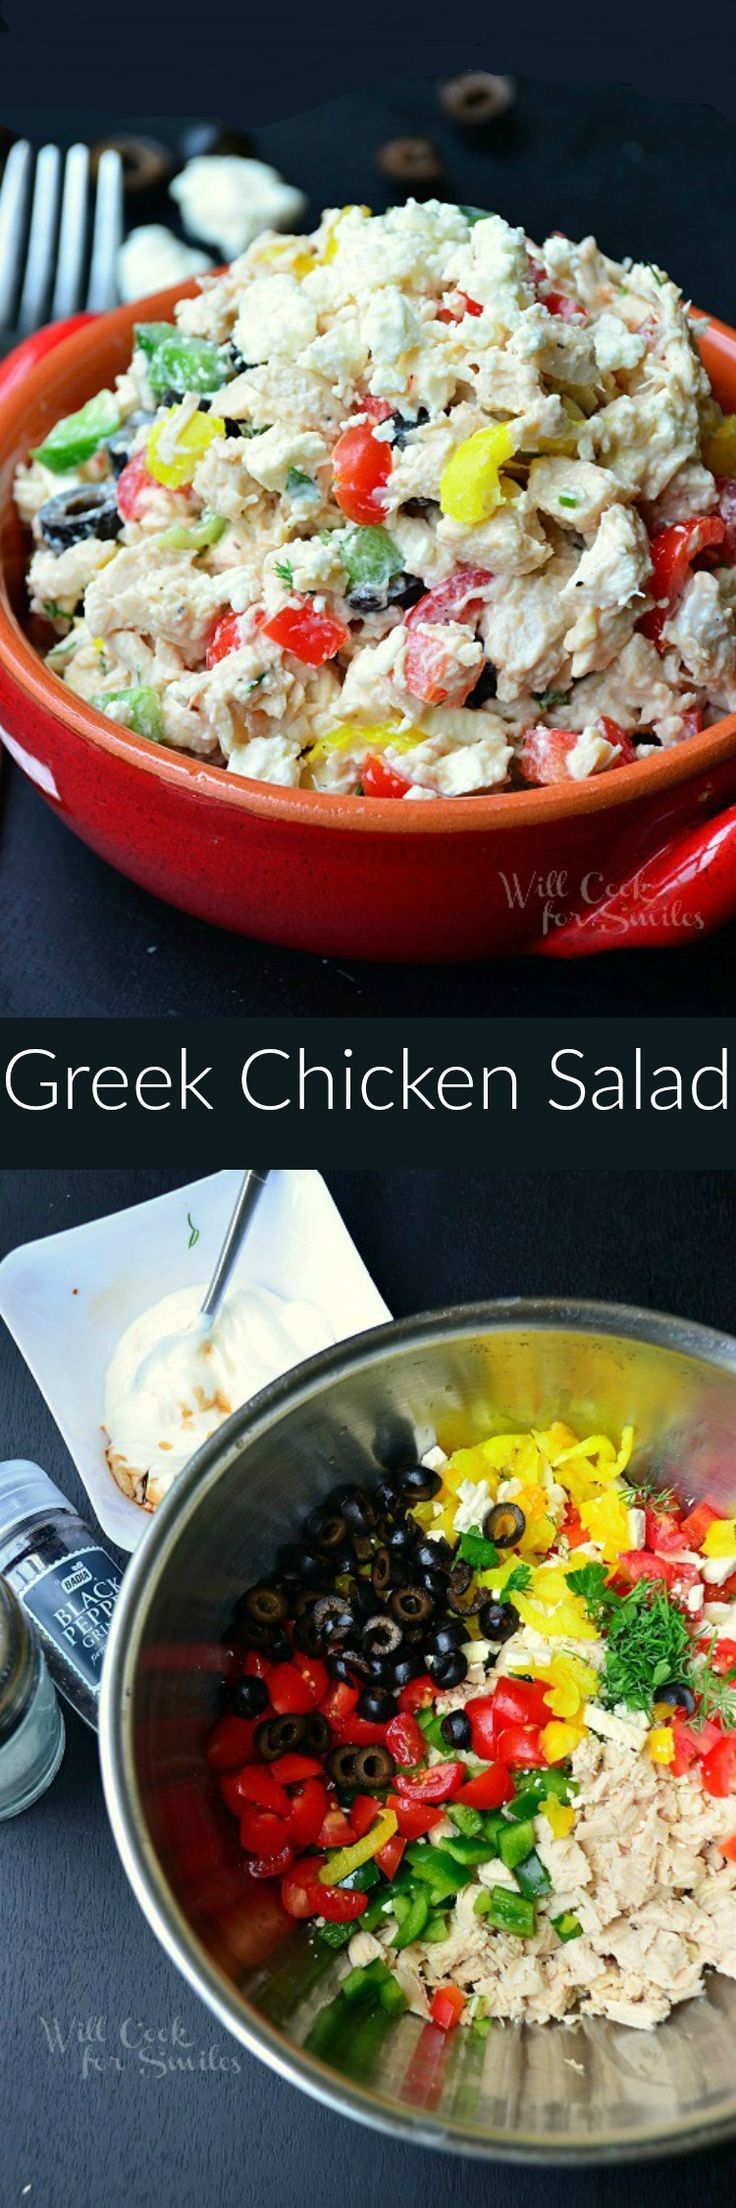 Greek Chicken Salad. Its a chicken salad made with feta cheese, tomatoes, olives, bell peppers, Greek yogurt and many more goodies! It's great on sandwiches or as a side for your next barbecue.